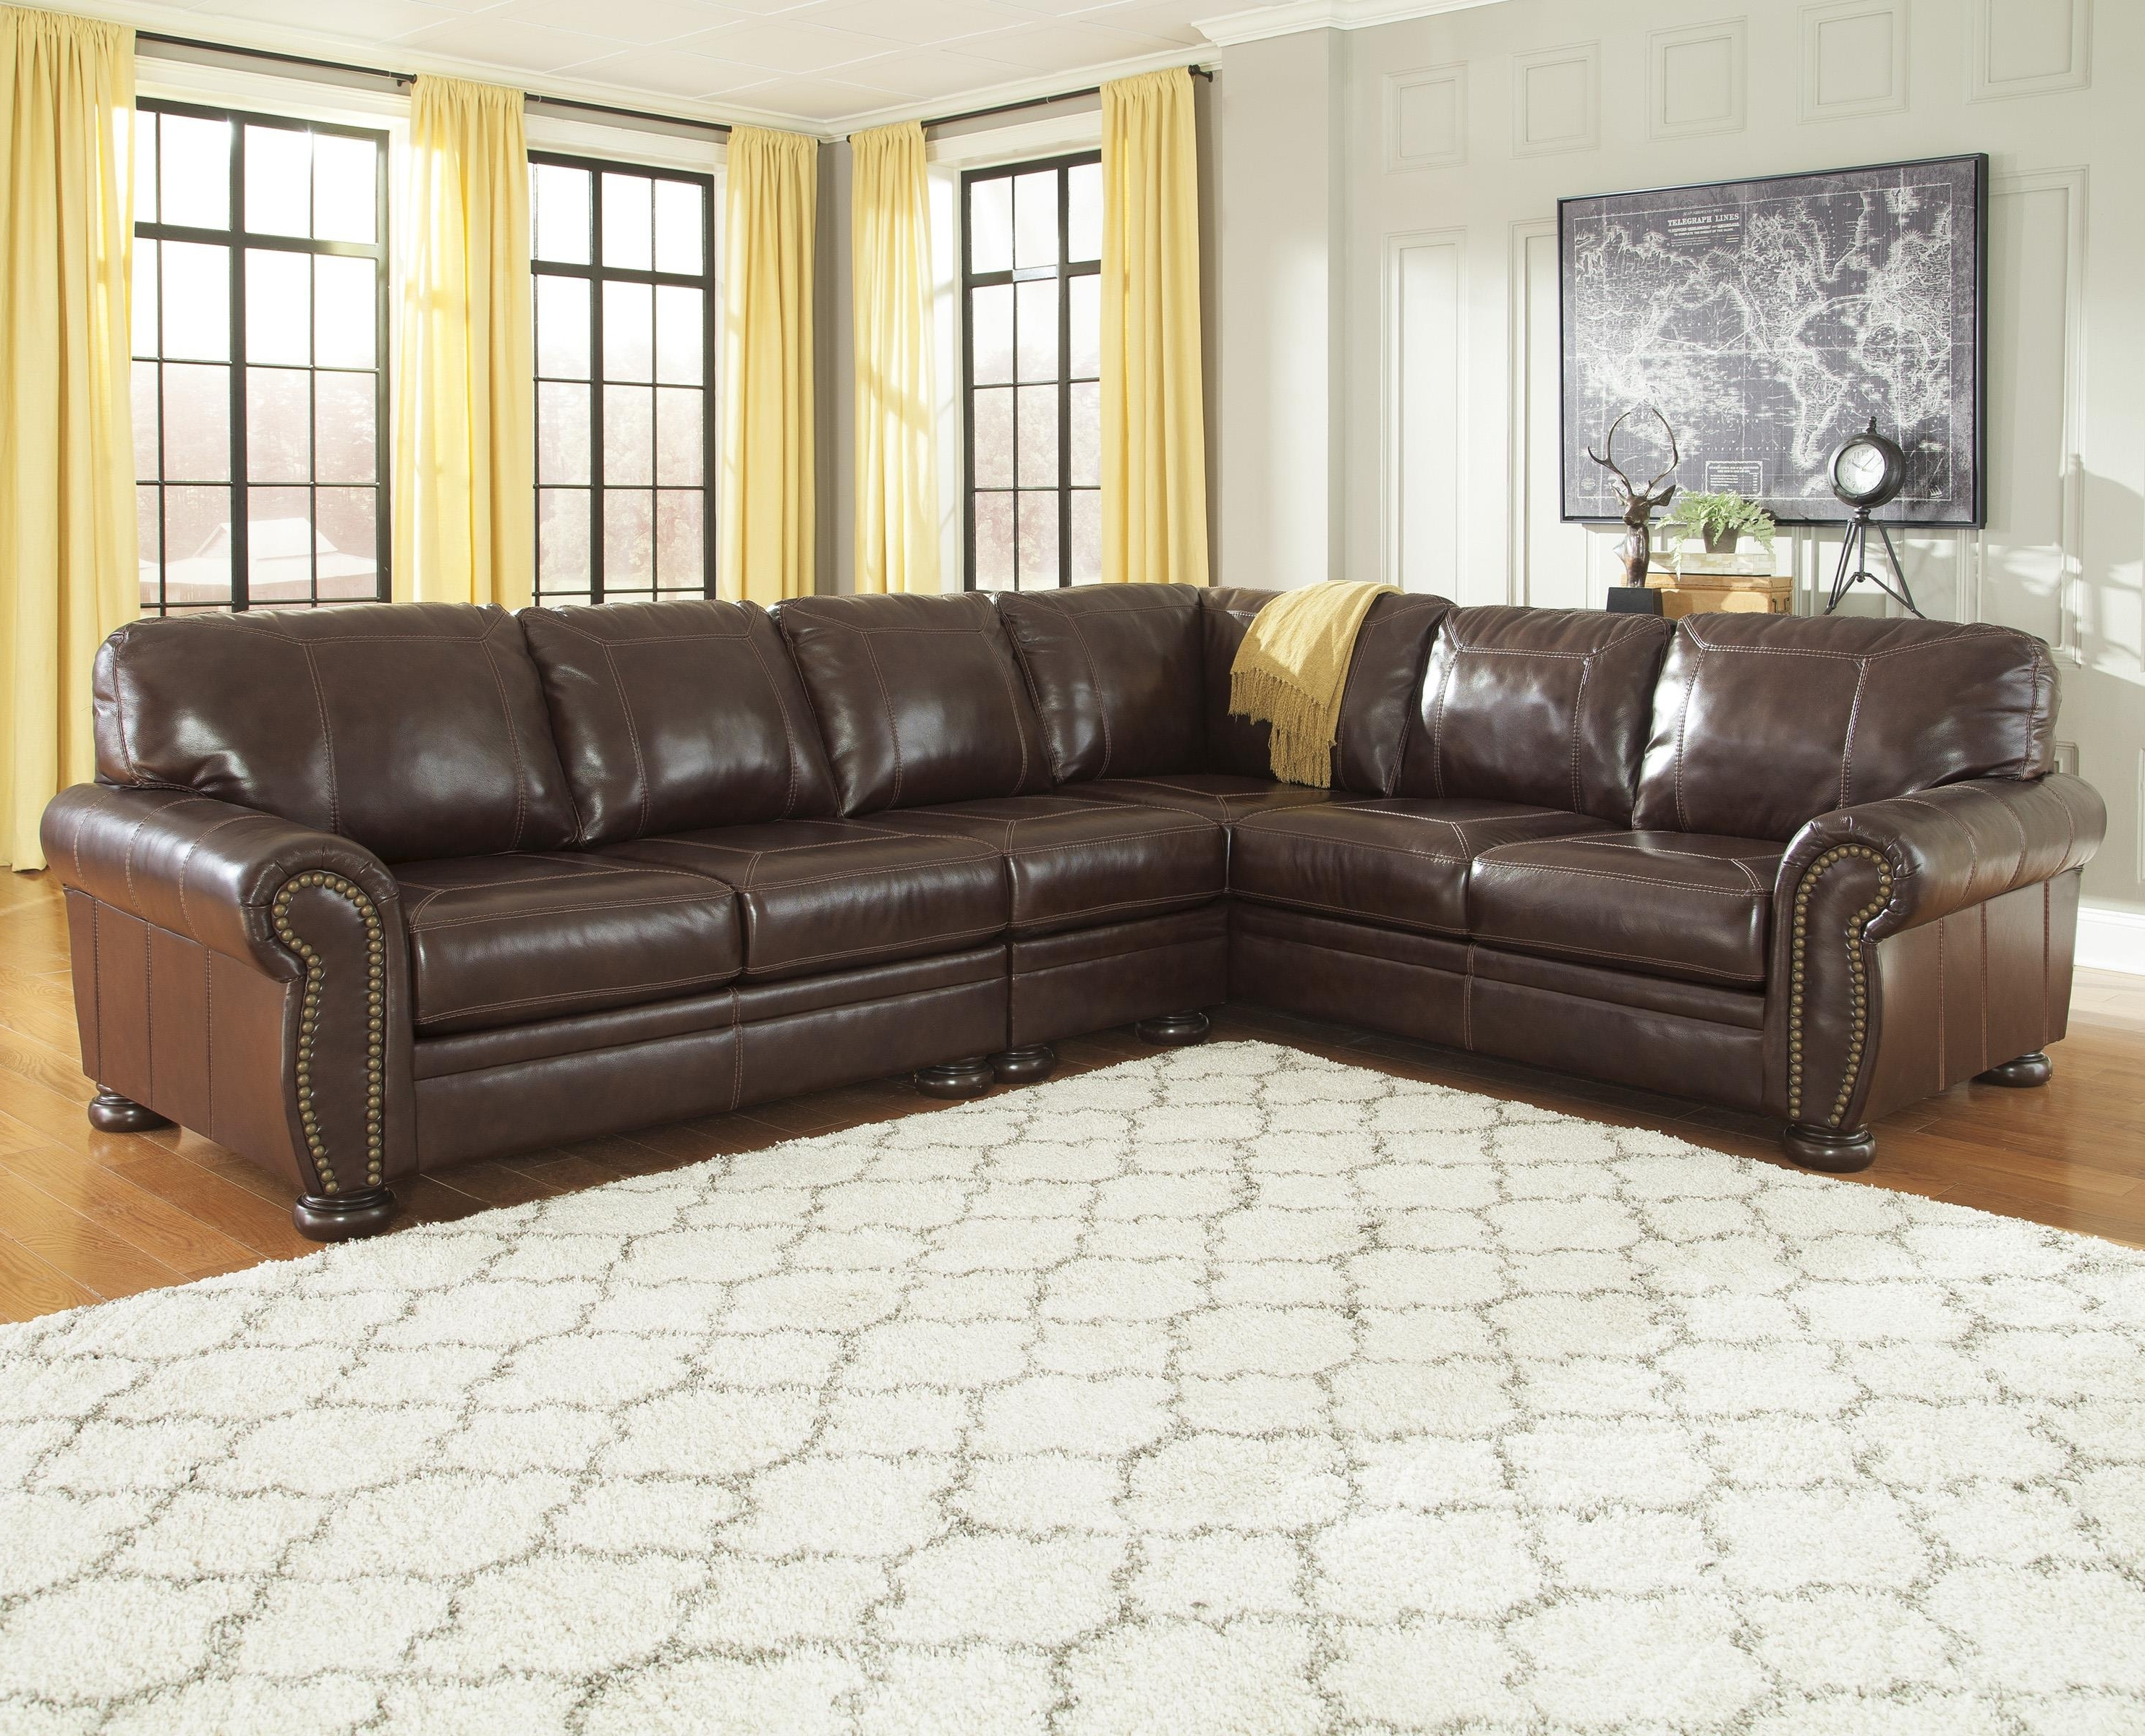 Most Recent Sectional Sofas With Nailhead Trim With 3 Piece Leather Match Sectional With Rolled Arms, Nailhead Trim (View 10 of 20)